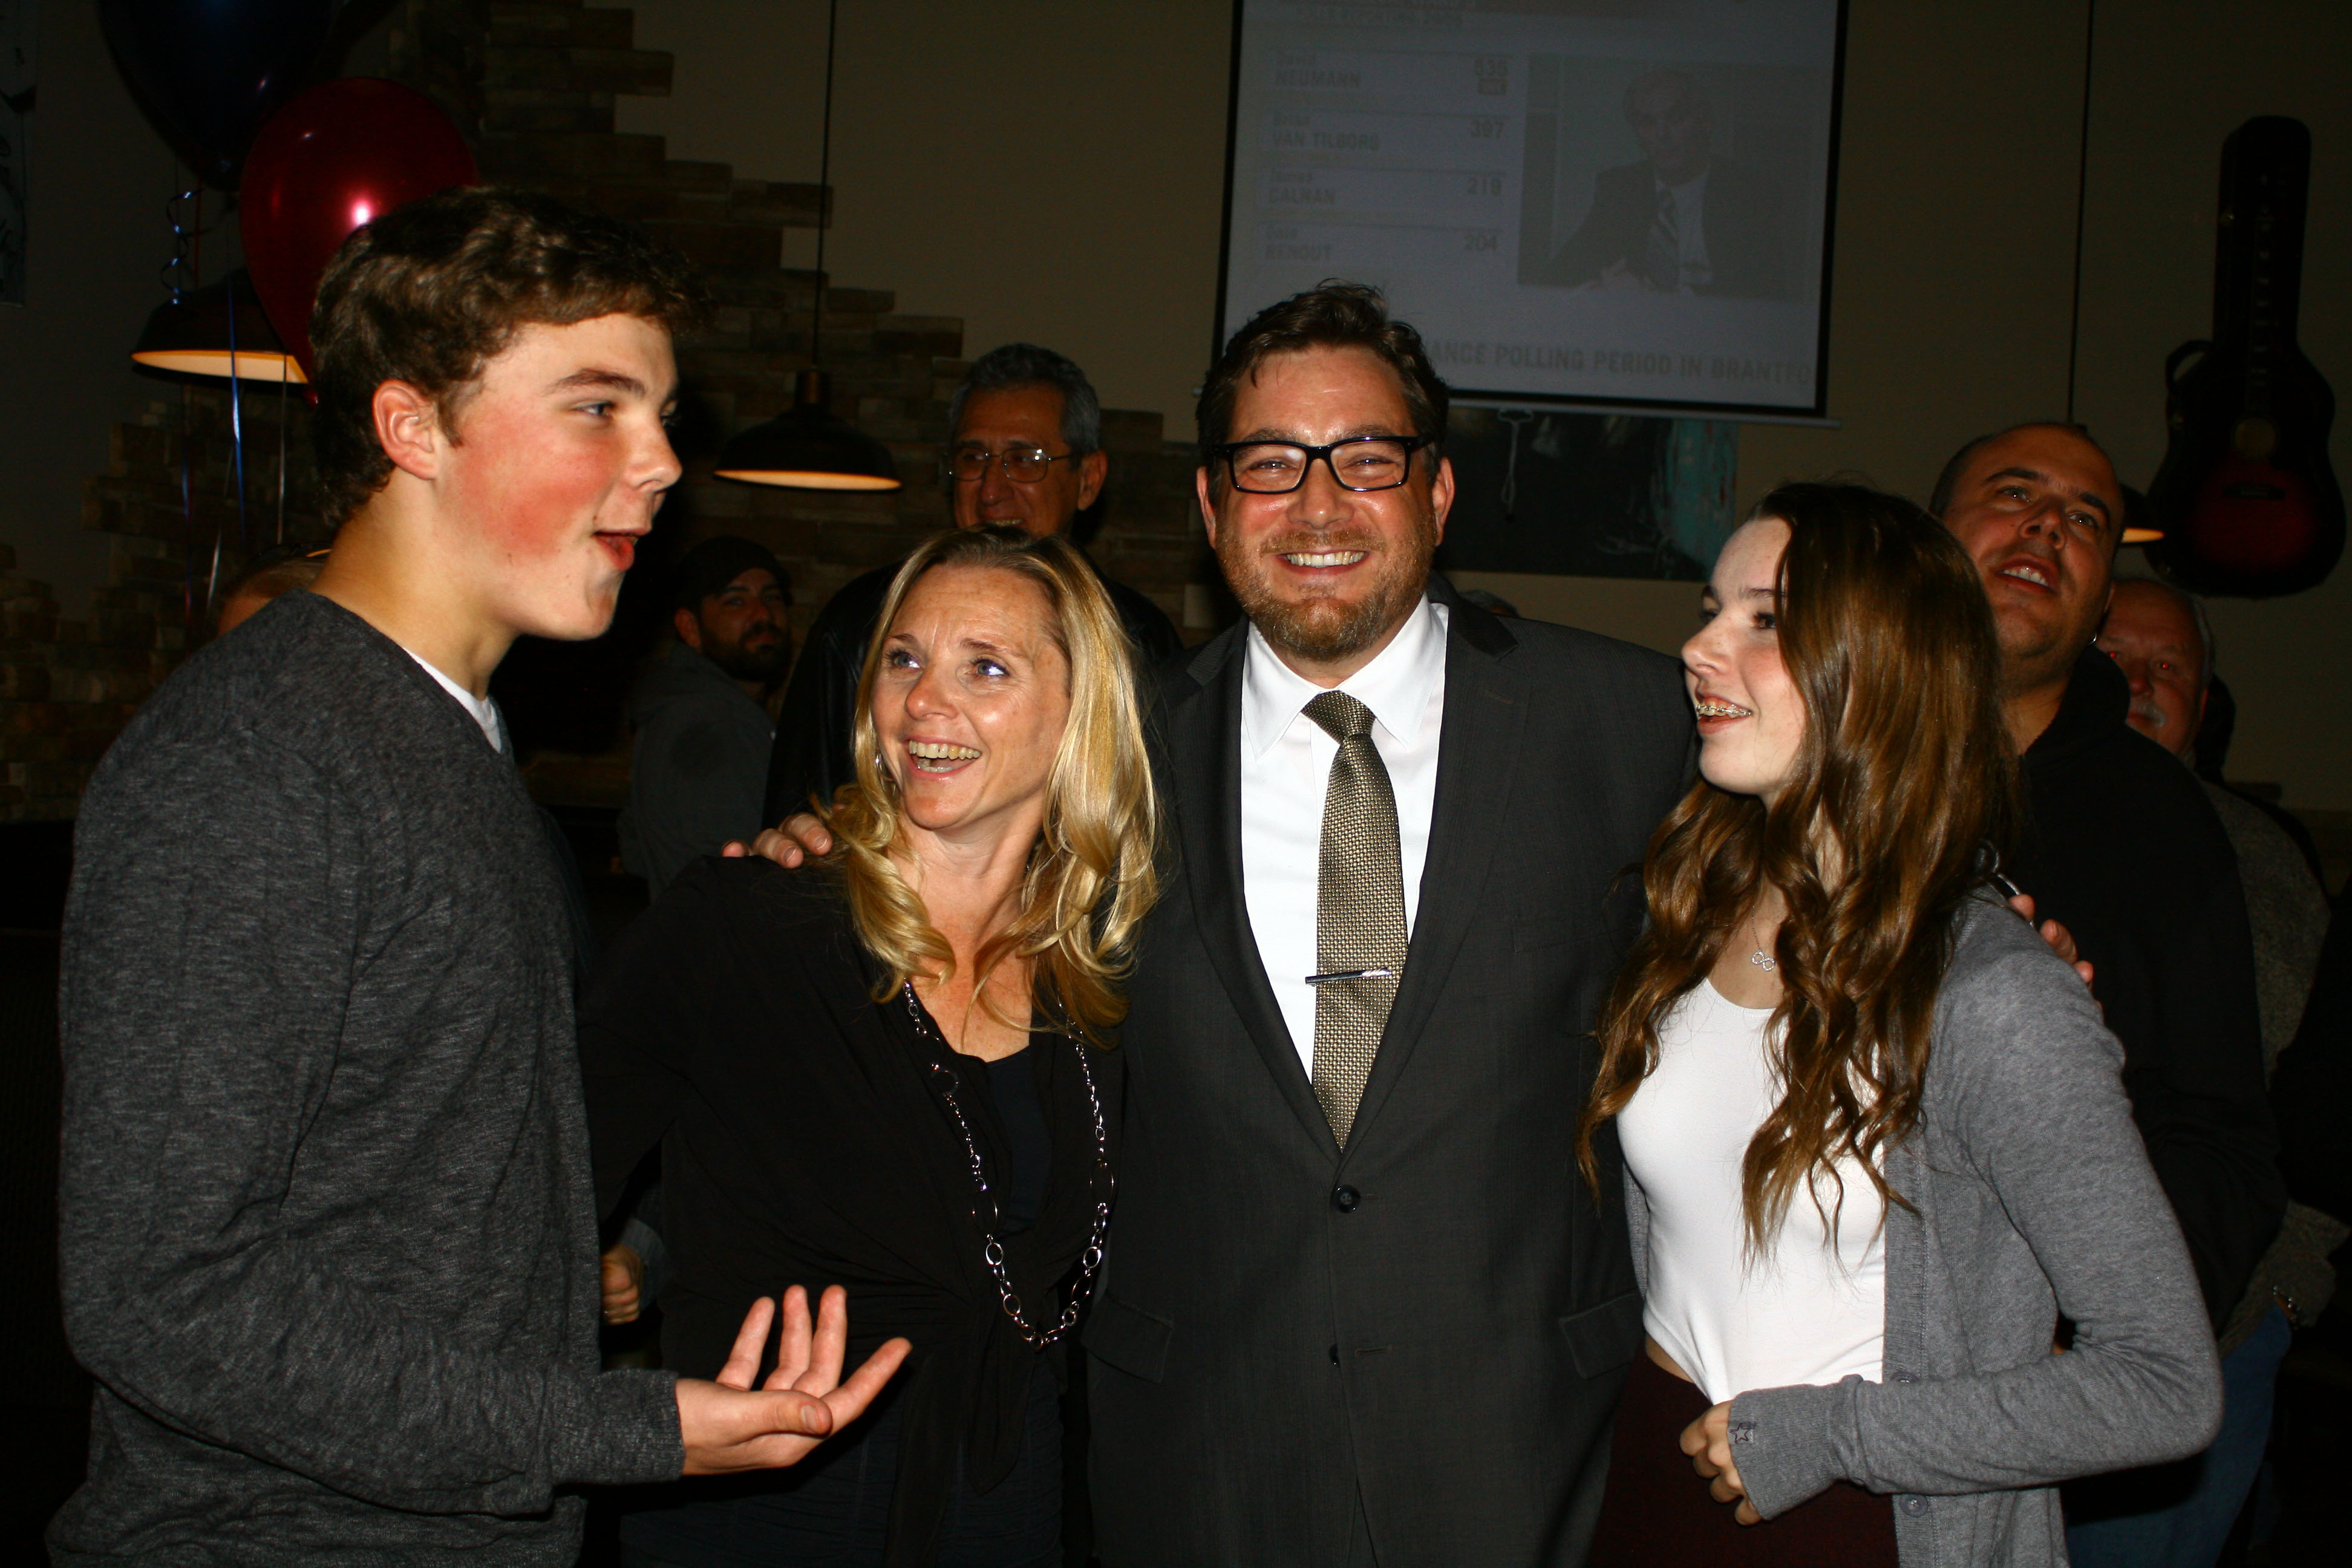 Mayor Friel with his wife and children after winning last night's election. Photo by Cody Hoffman